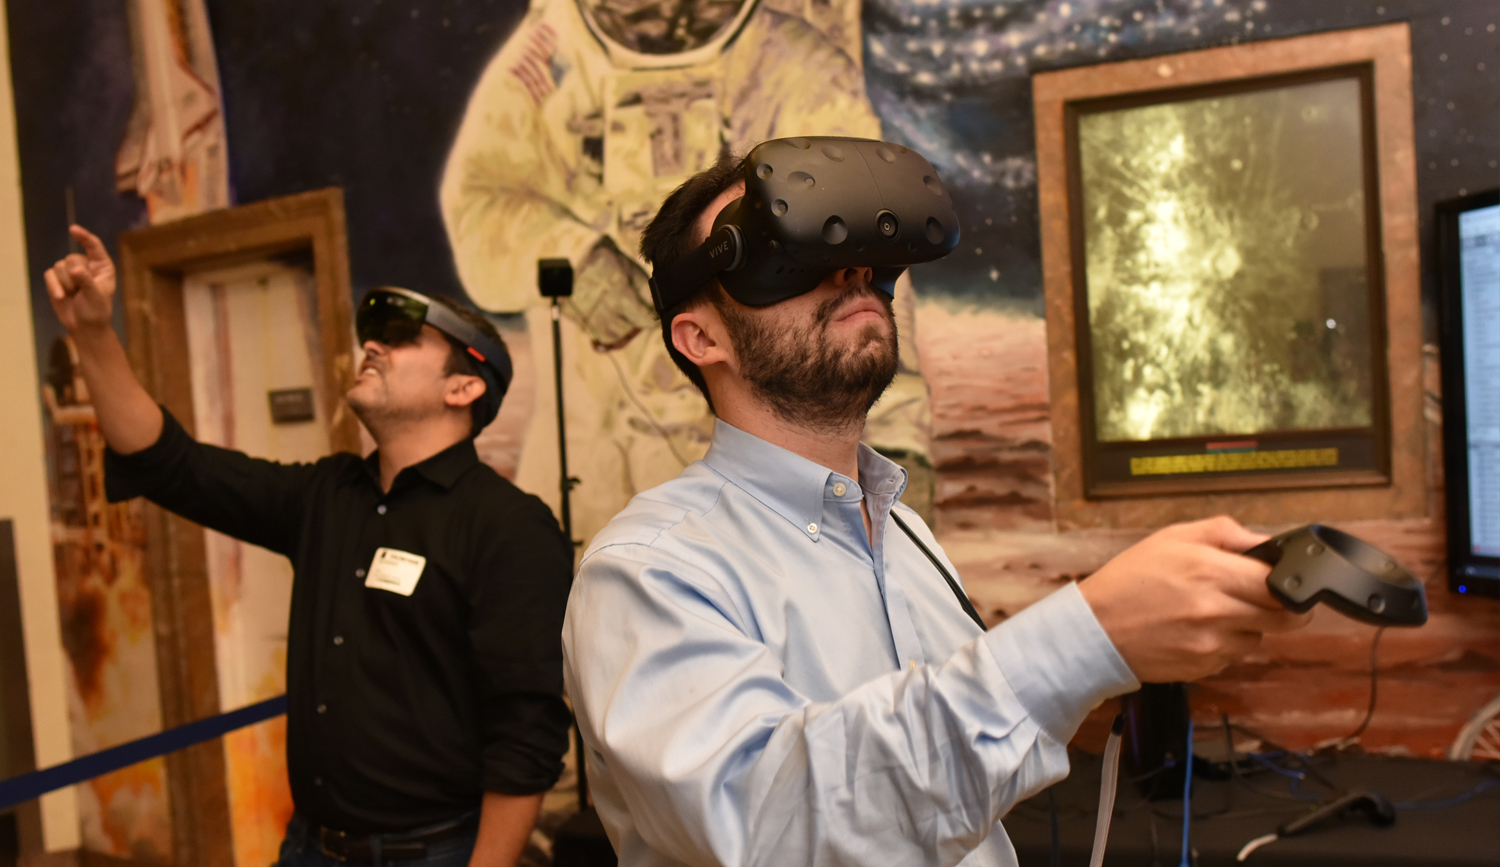 People Experiencing Virtual Reality